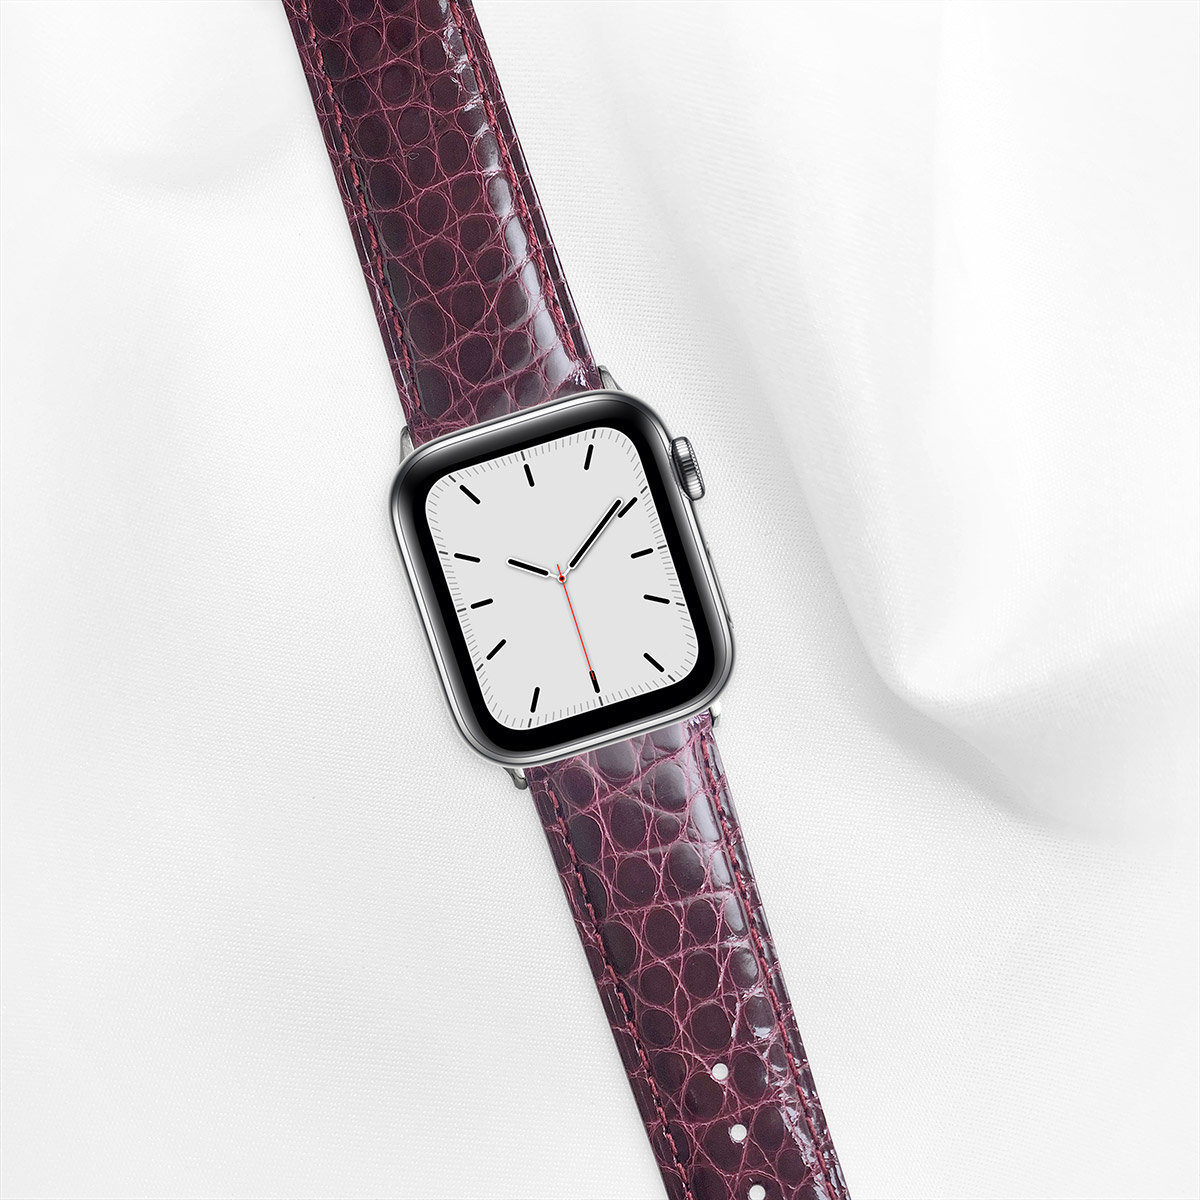 Shiny Alligator 40mm Apple Watch 5 Strap, Deep Wine Red, Round Scales, for Small Casing